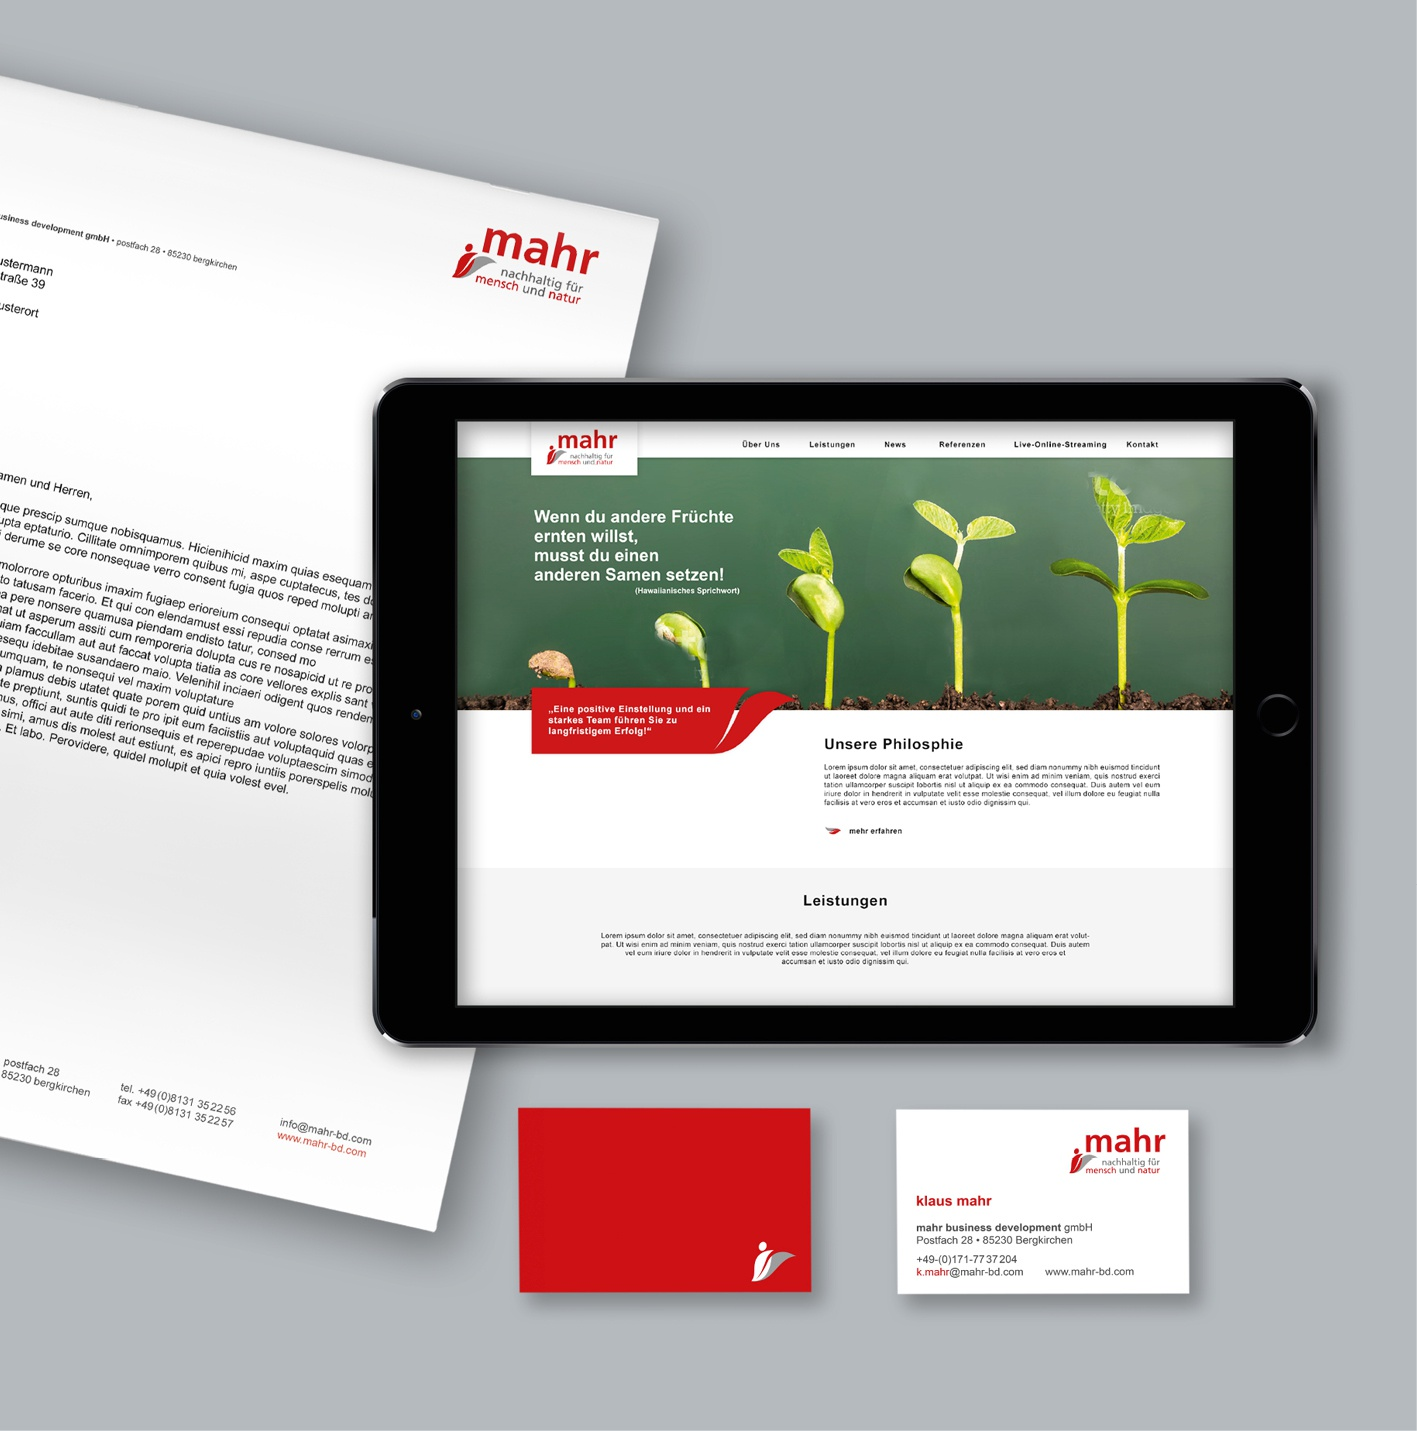 mahr business development GmbH – Corporate Design: mahr business developement – Corporate Design, Redesign Logo, Geschäftsausstattung inkl. Wordvorlagen, Website, Konzept zur Logoverwendung und Give aways